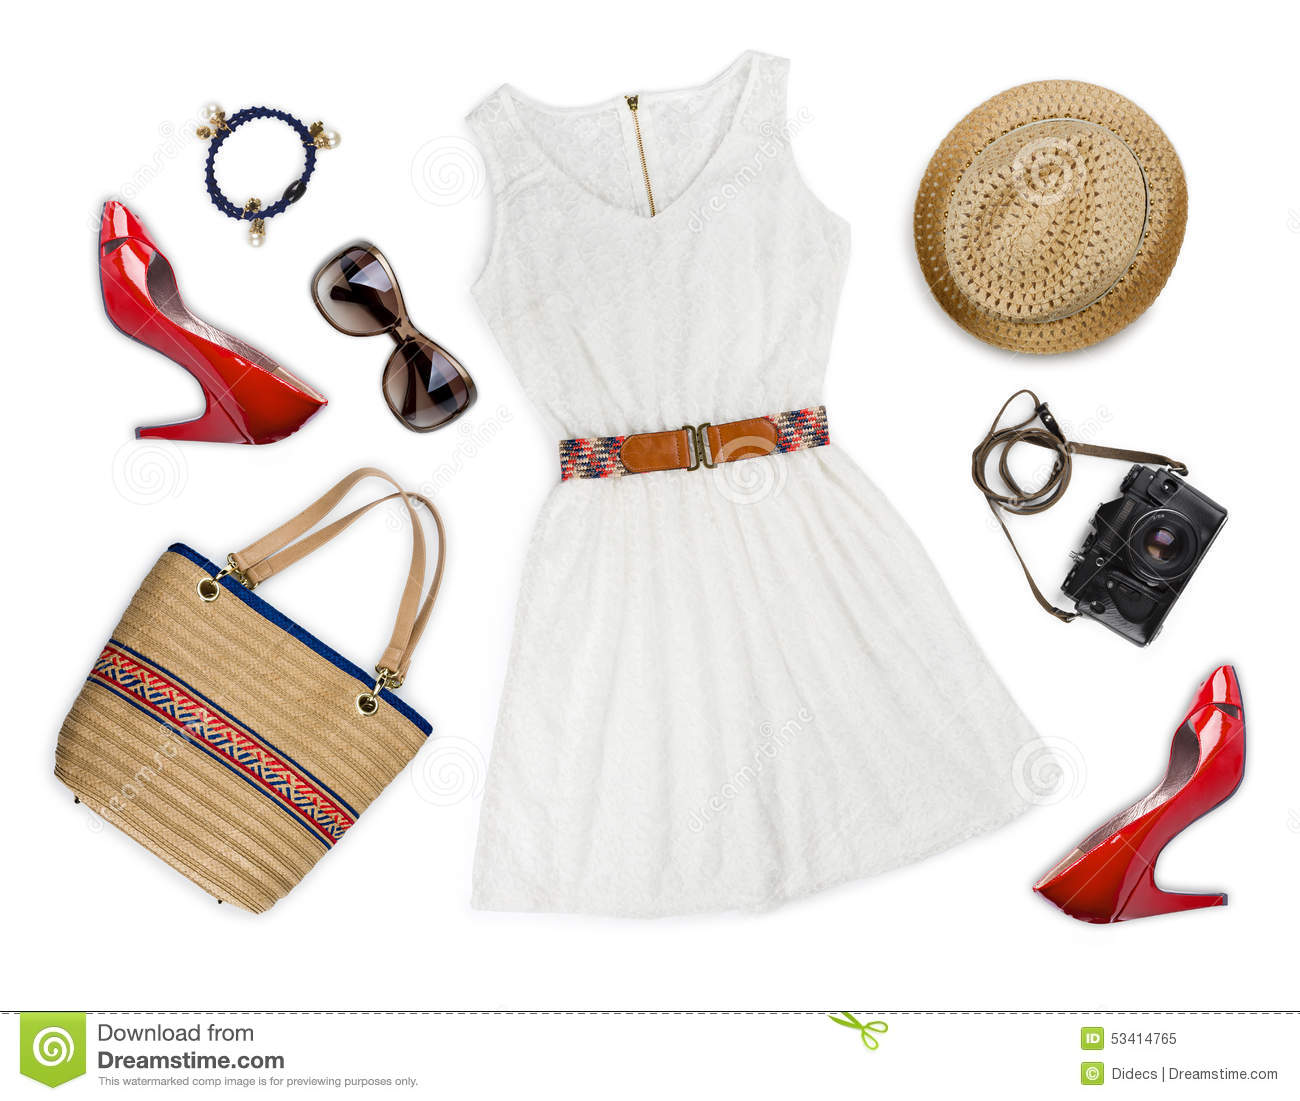 Collage of tourist clothing and accessories isolated on white